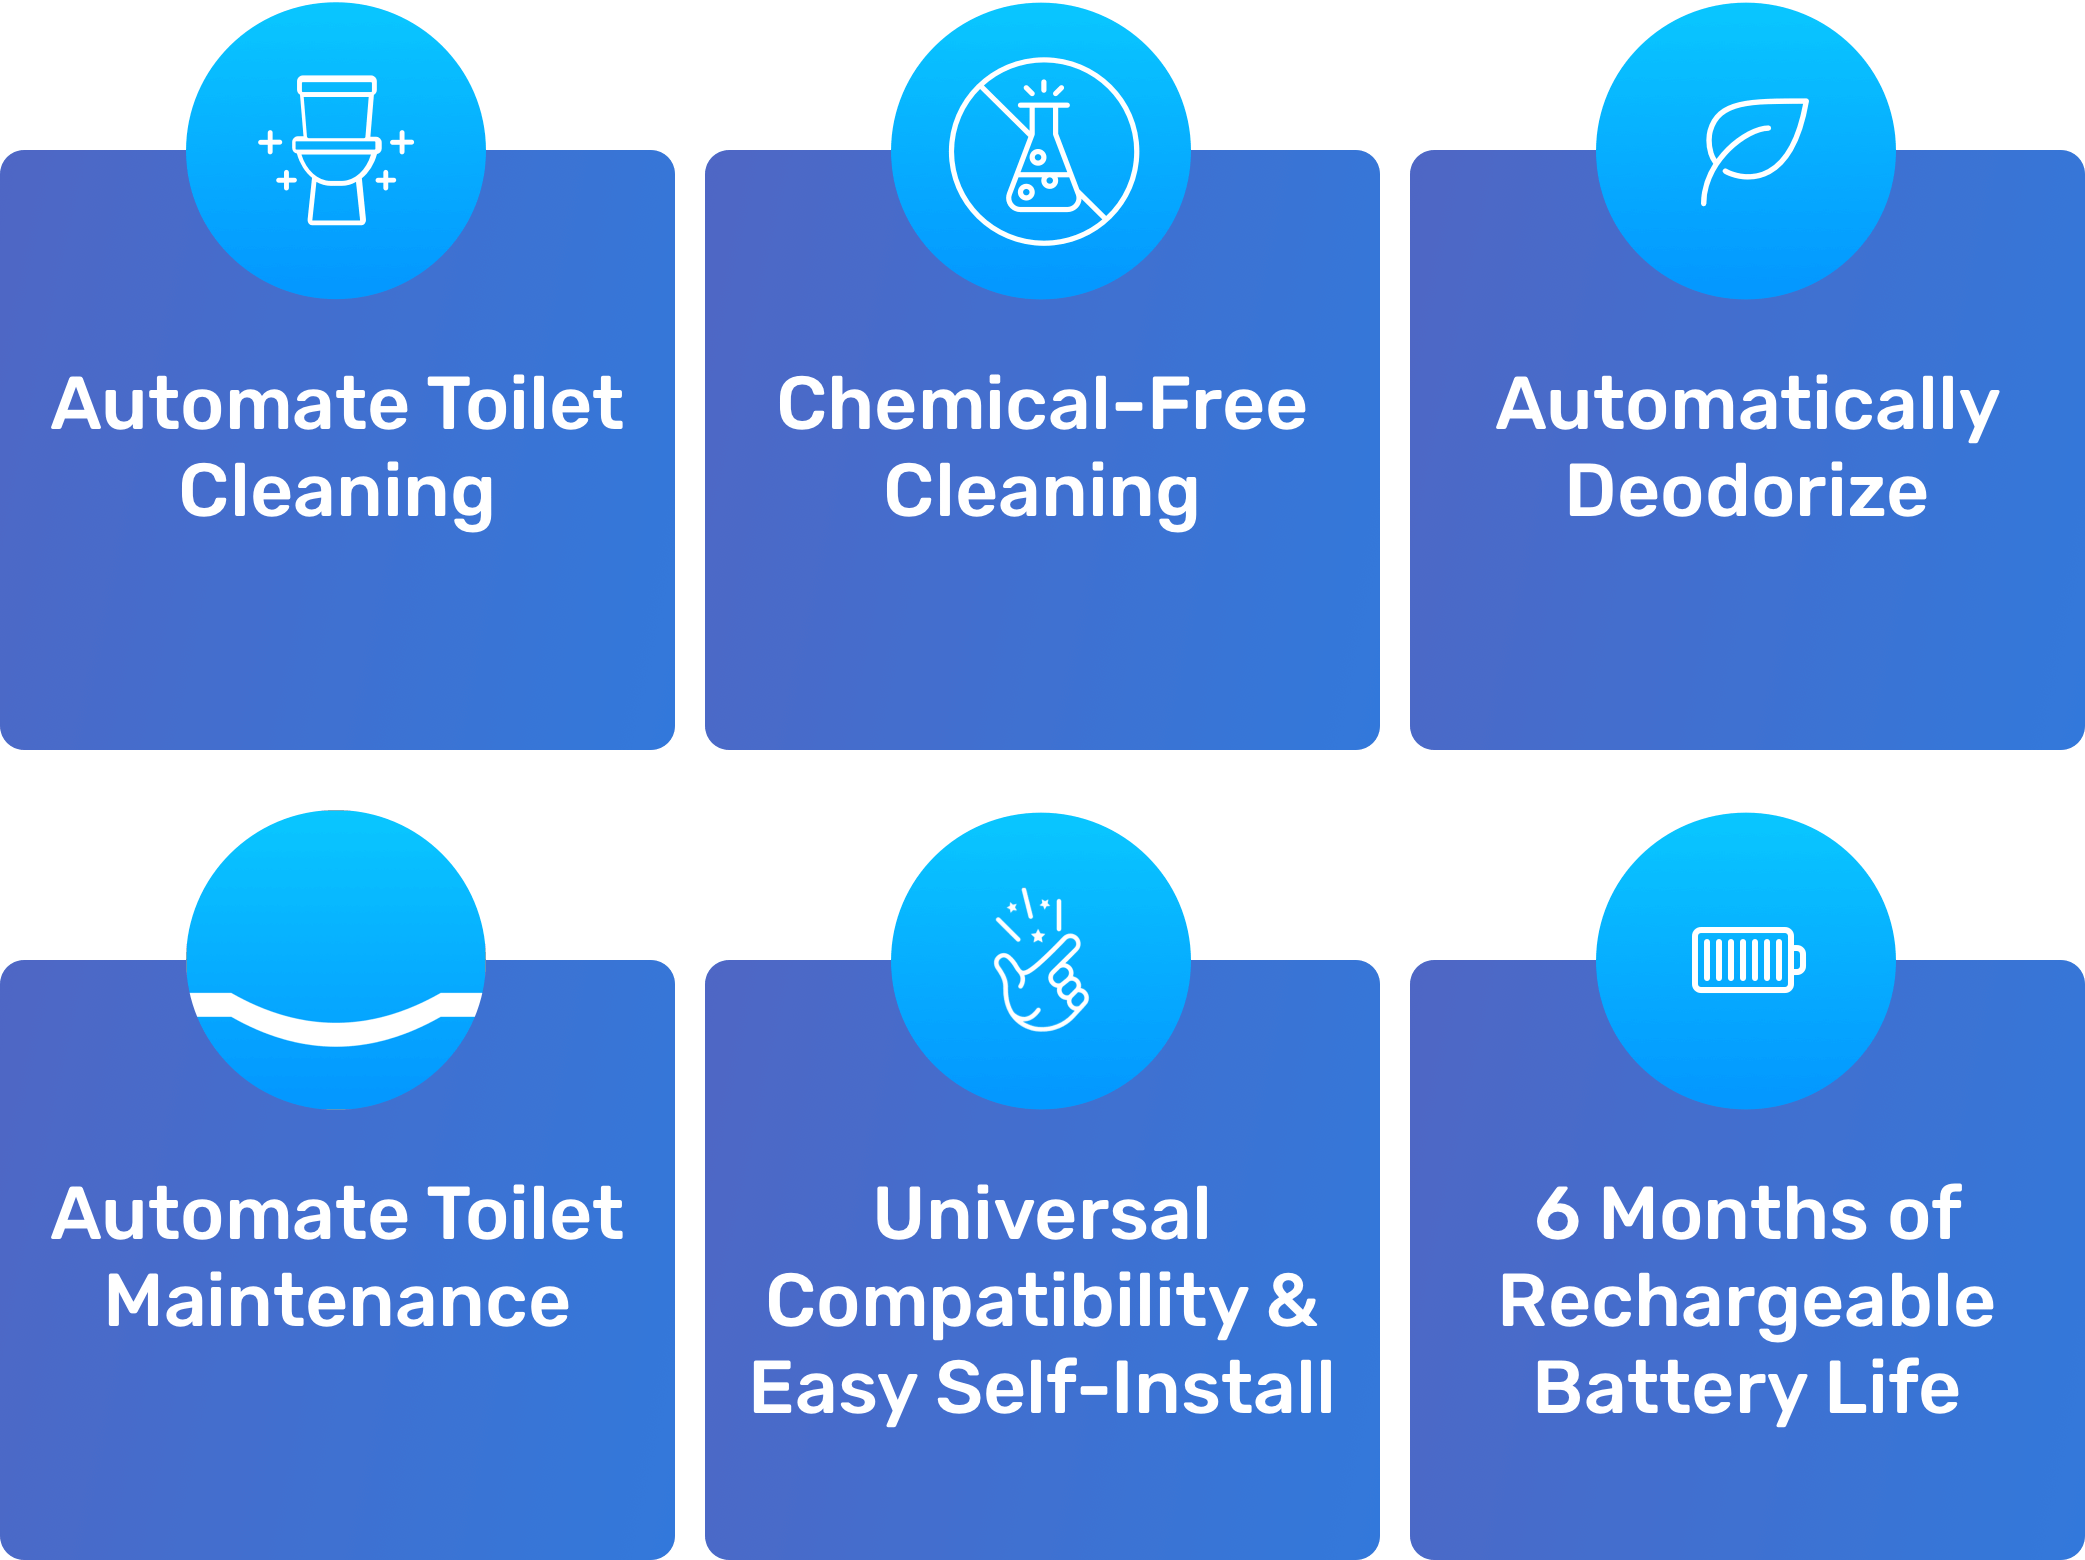 Shine: Automate Toilet Cleaning